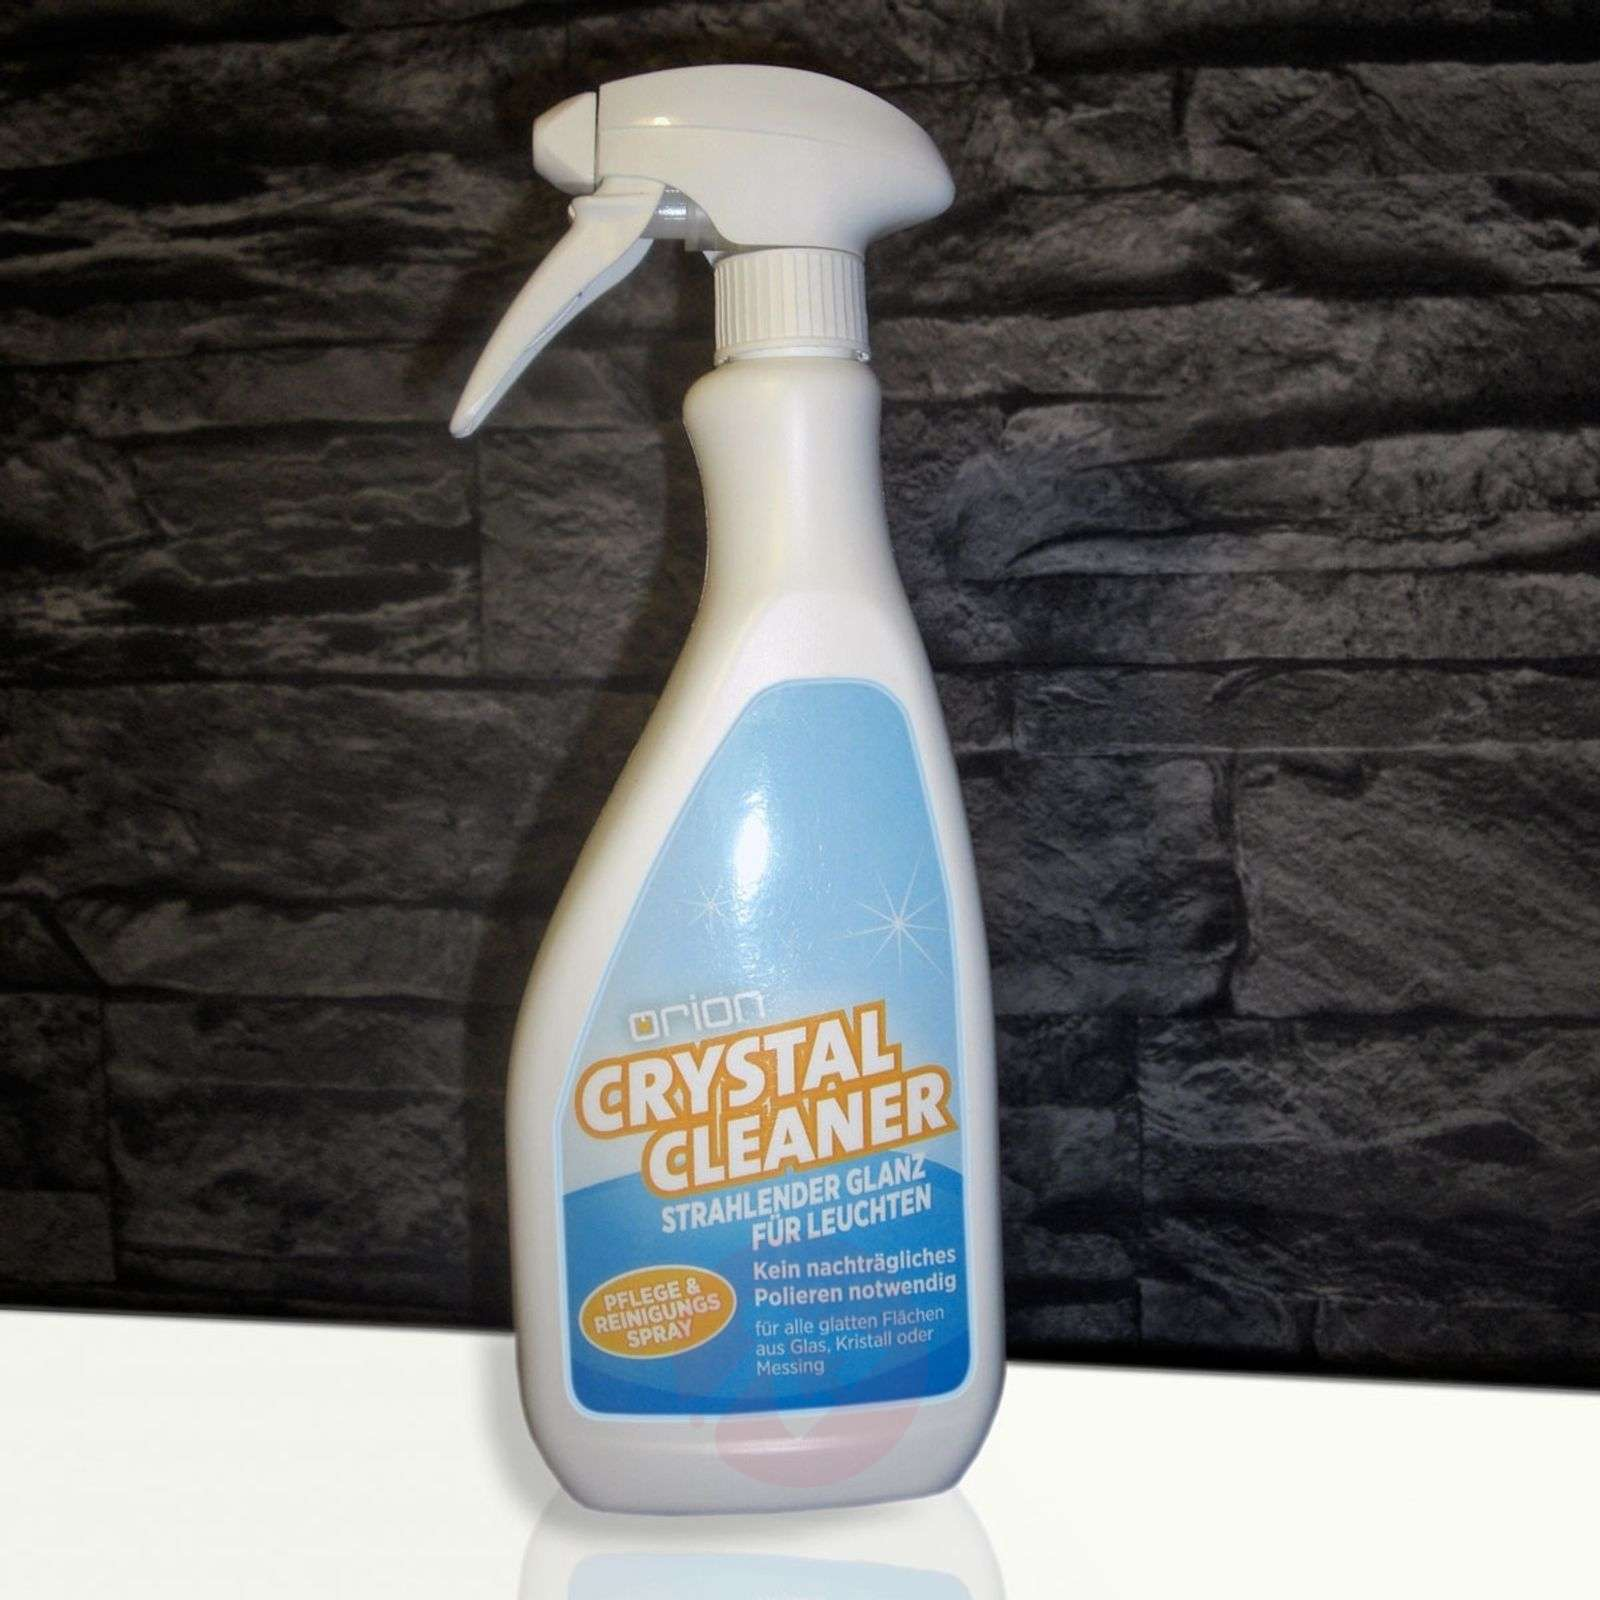 Orion Crystal Cleaning Spray-7253248-01